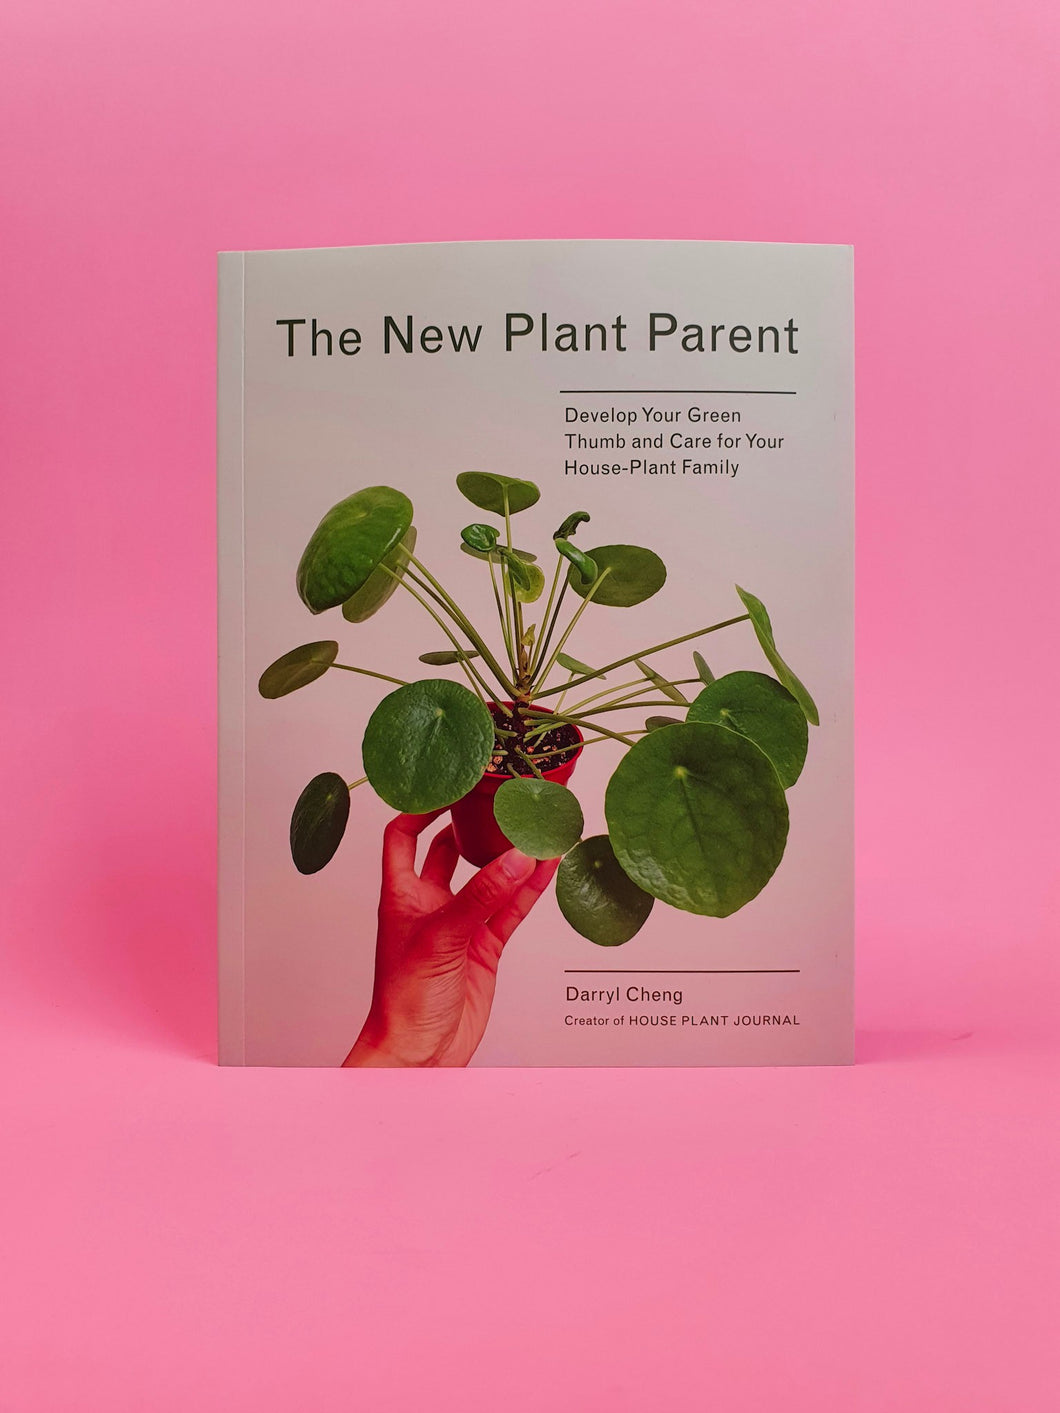 THE NEW PLANT PARENT by DARYLL CHENG